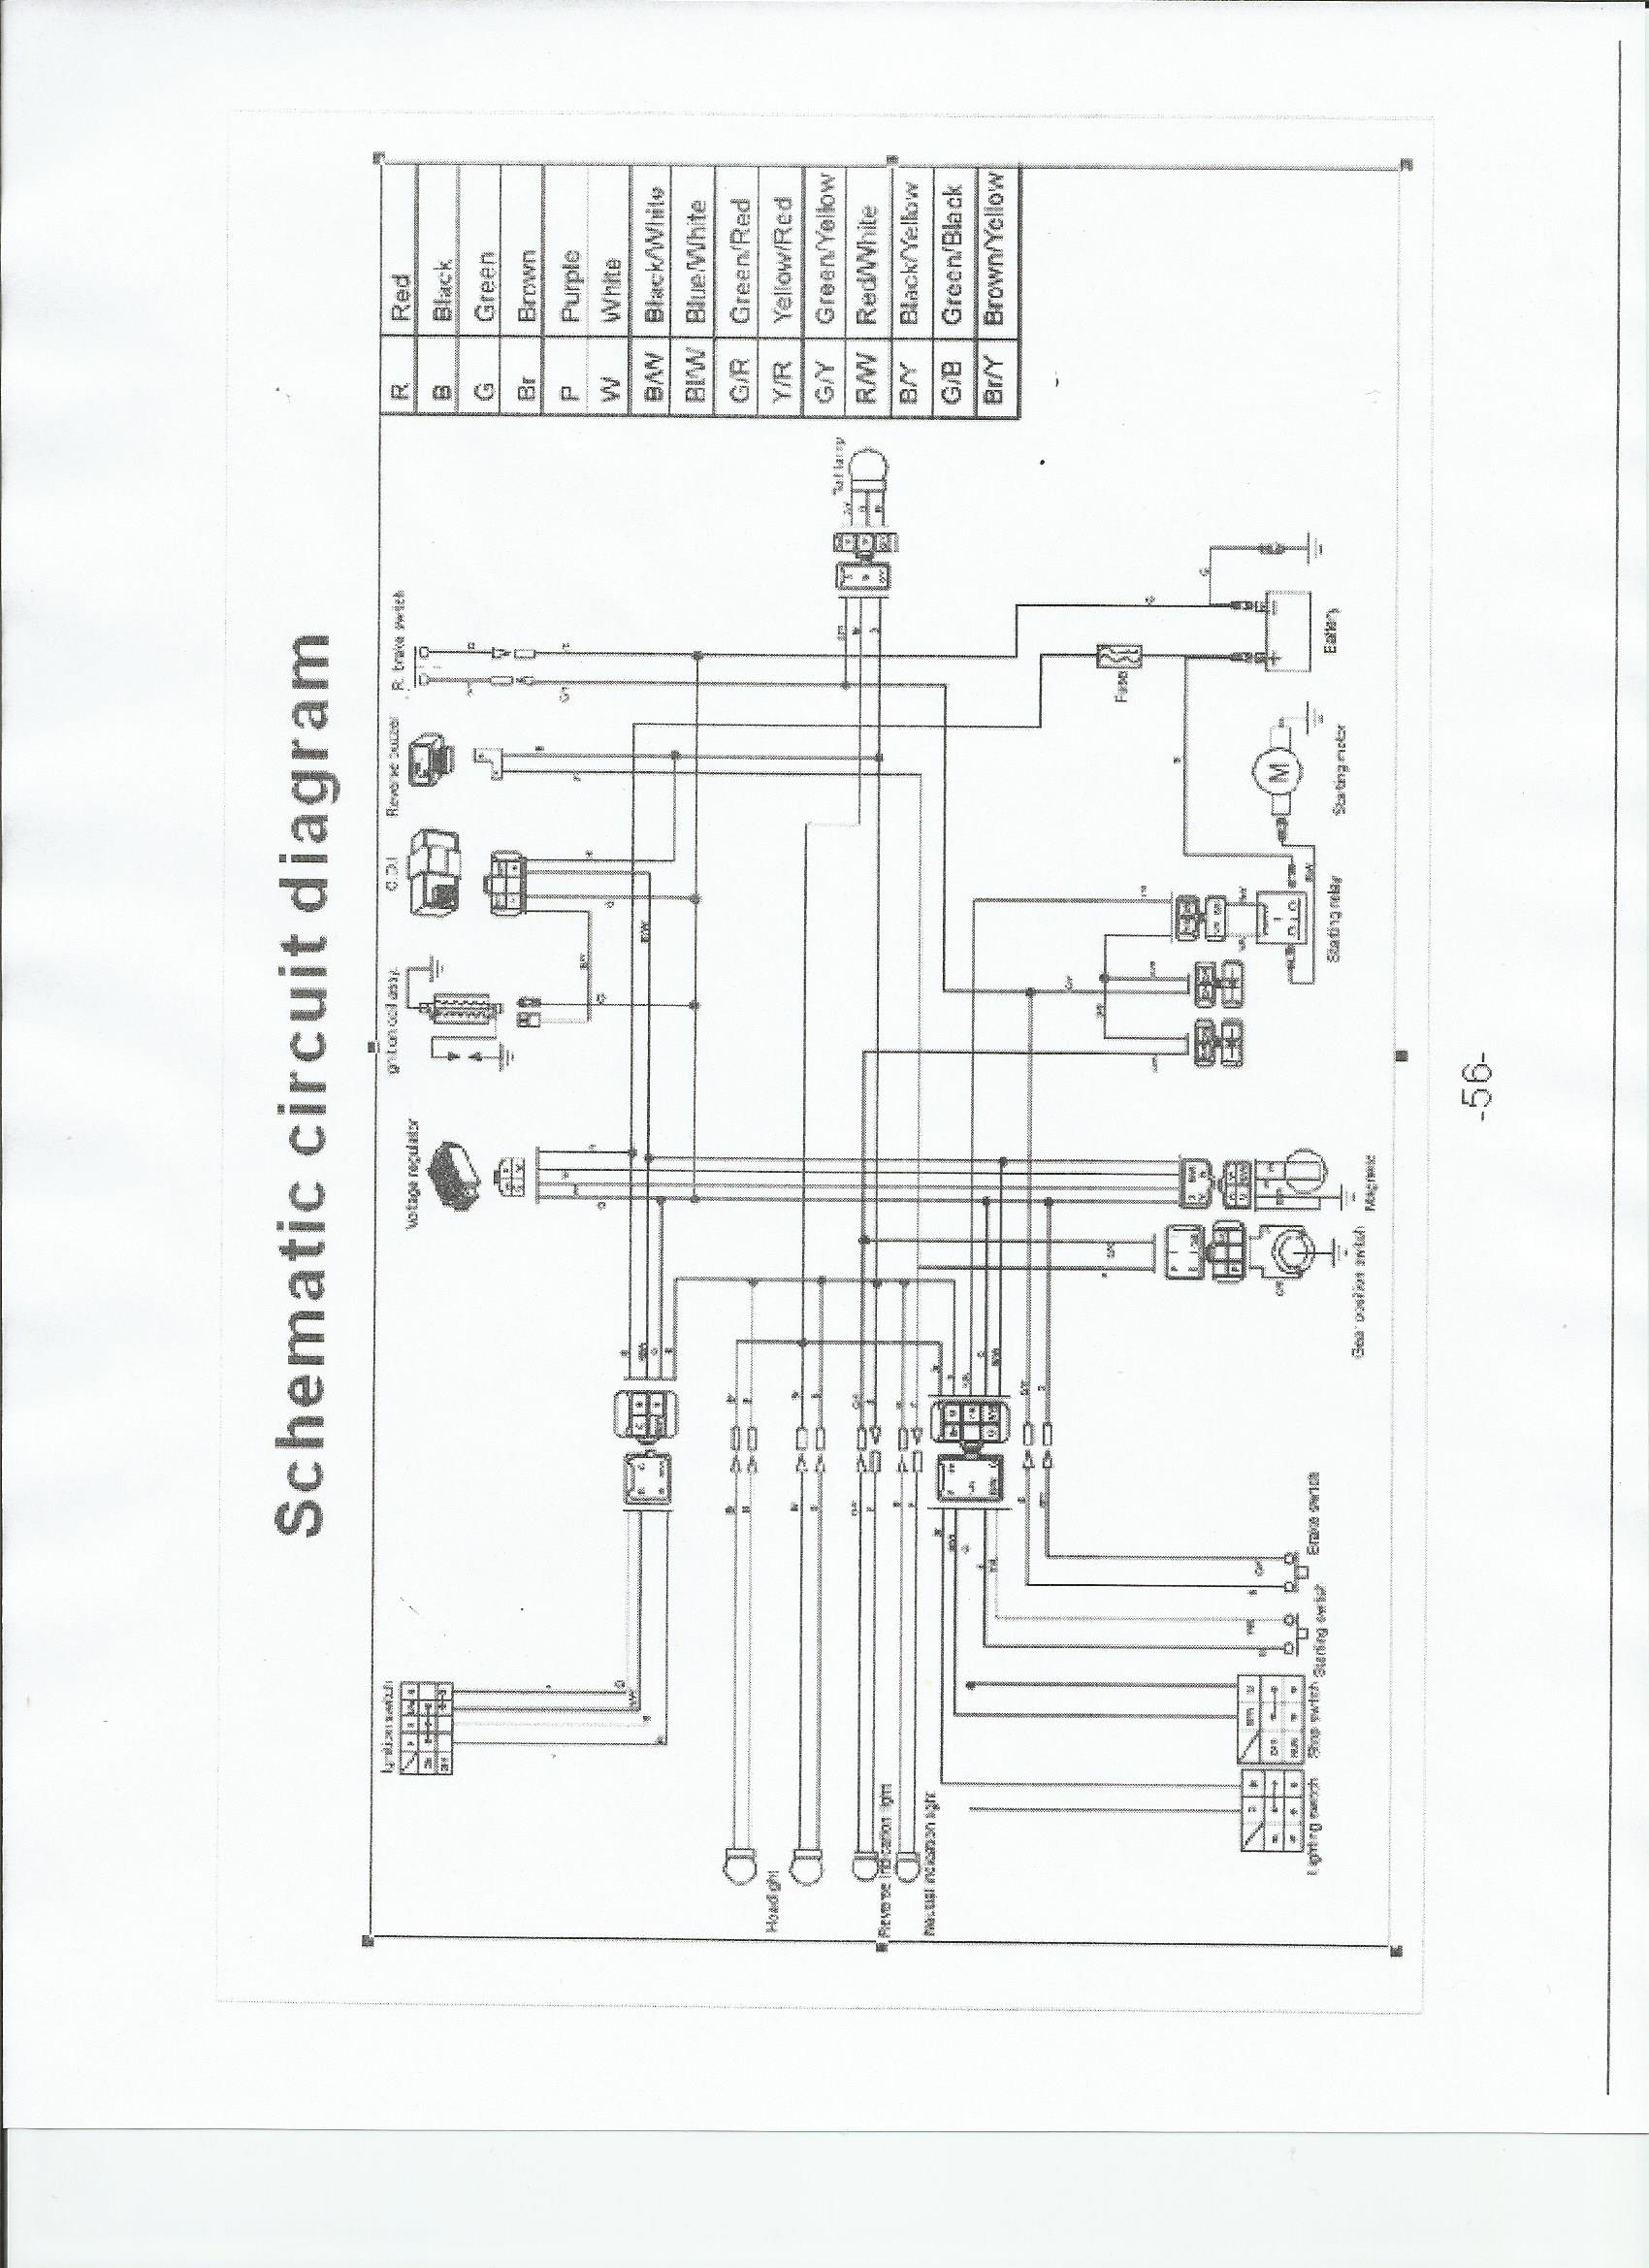 tao tao wiring schematic similiar pocket bike wiring diagram keywords readingrat net 49cc mini chopper wiring harness at n-0.co